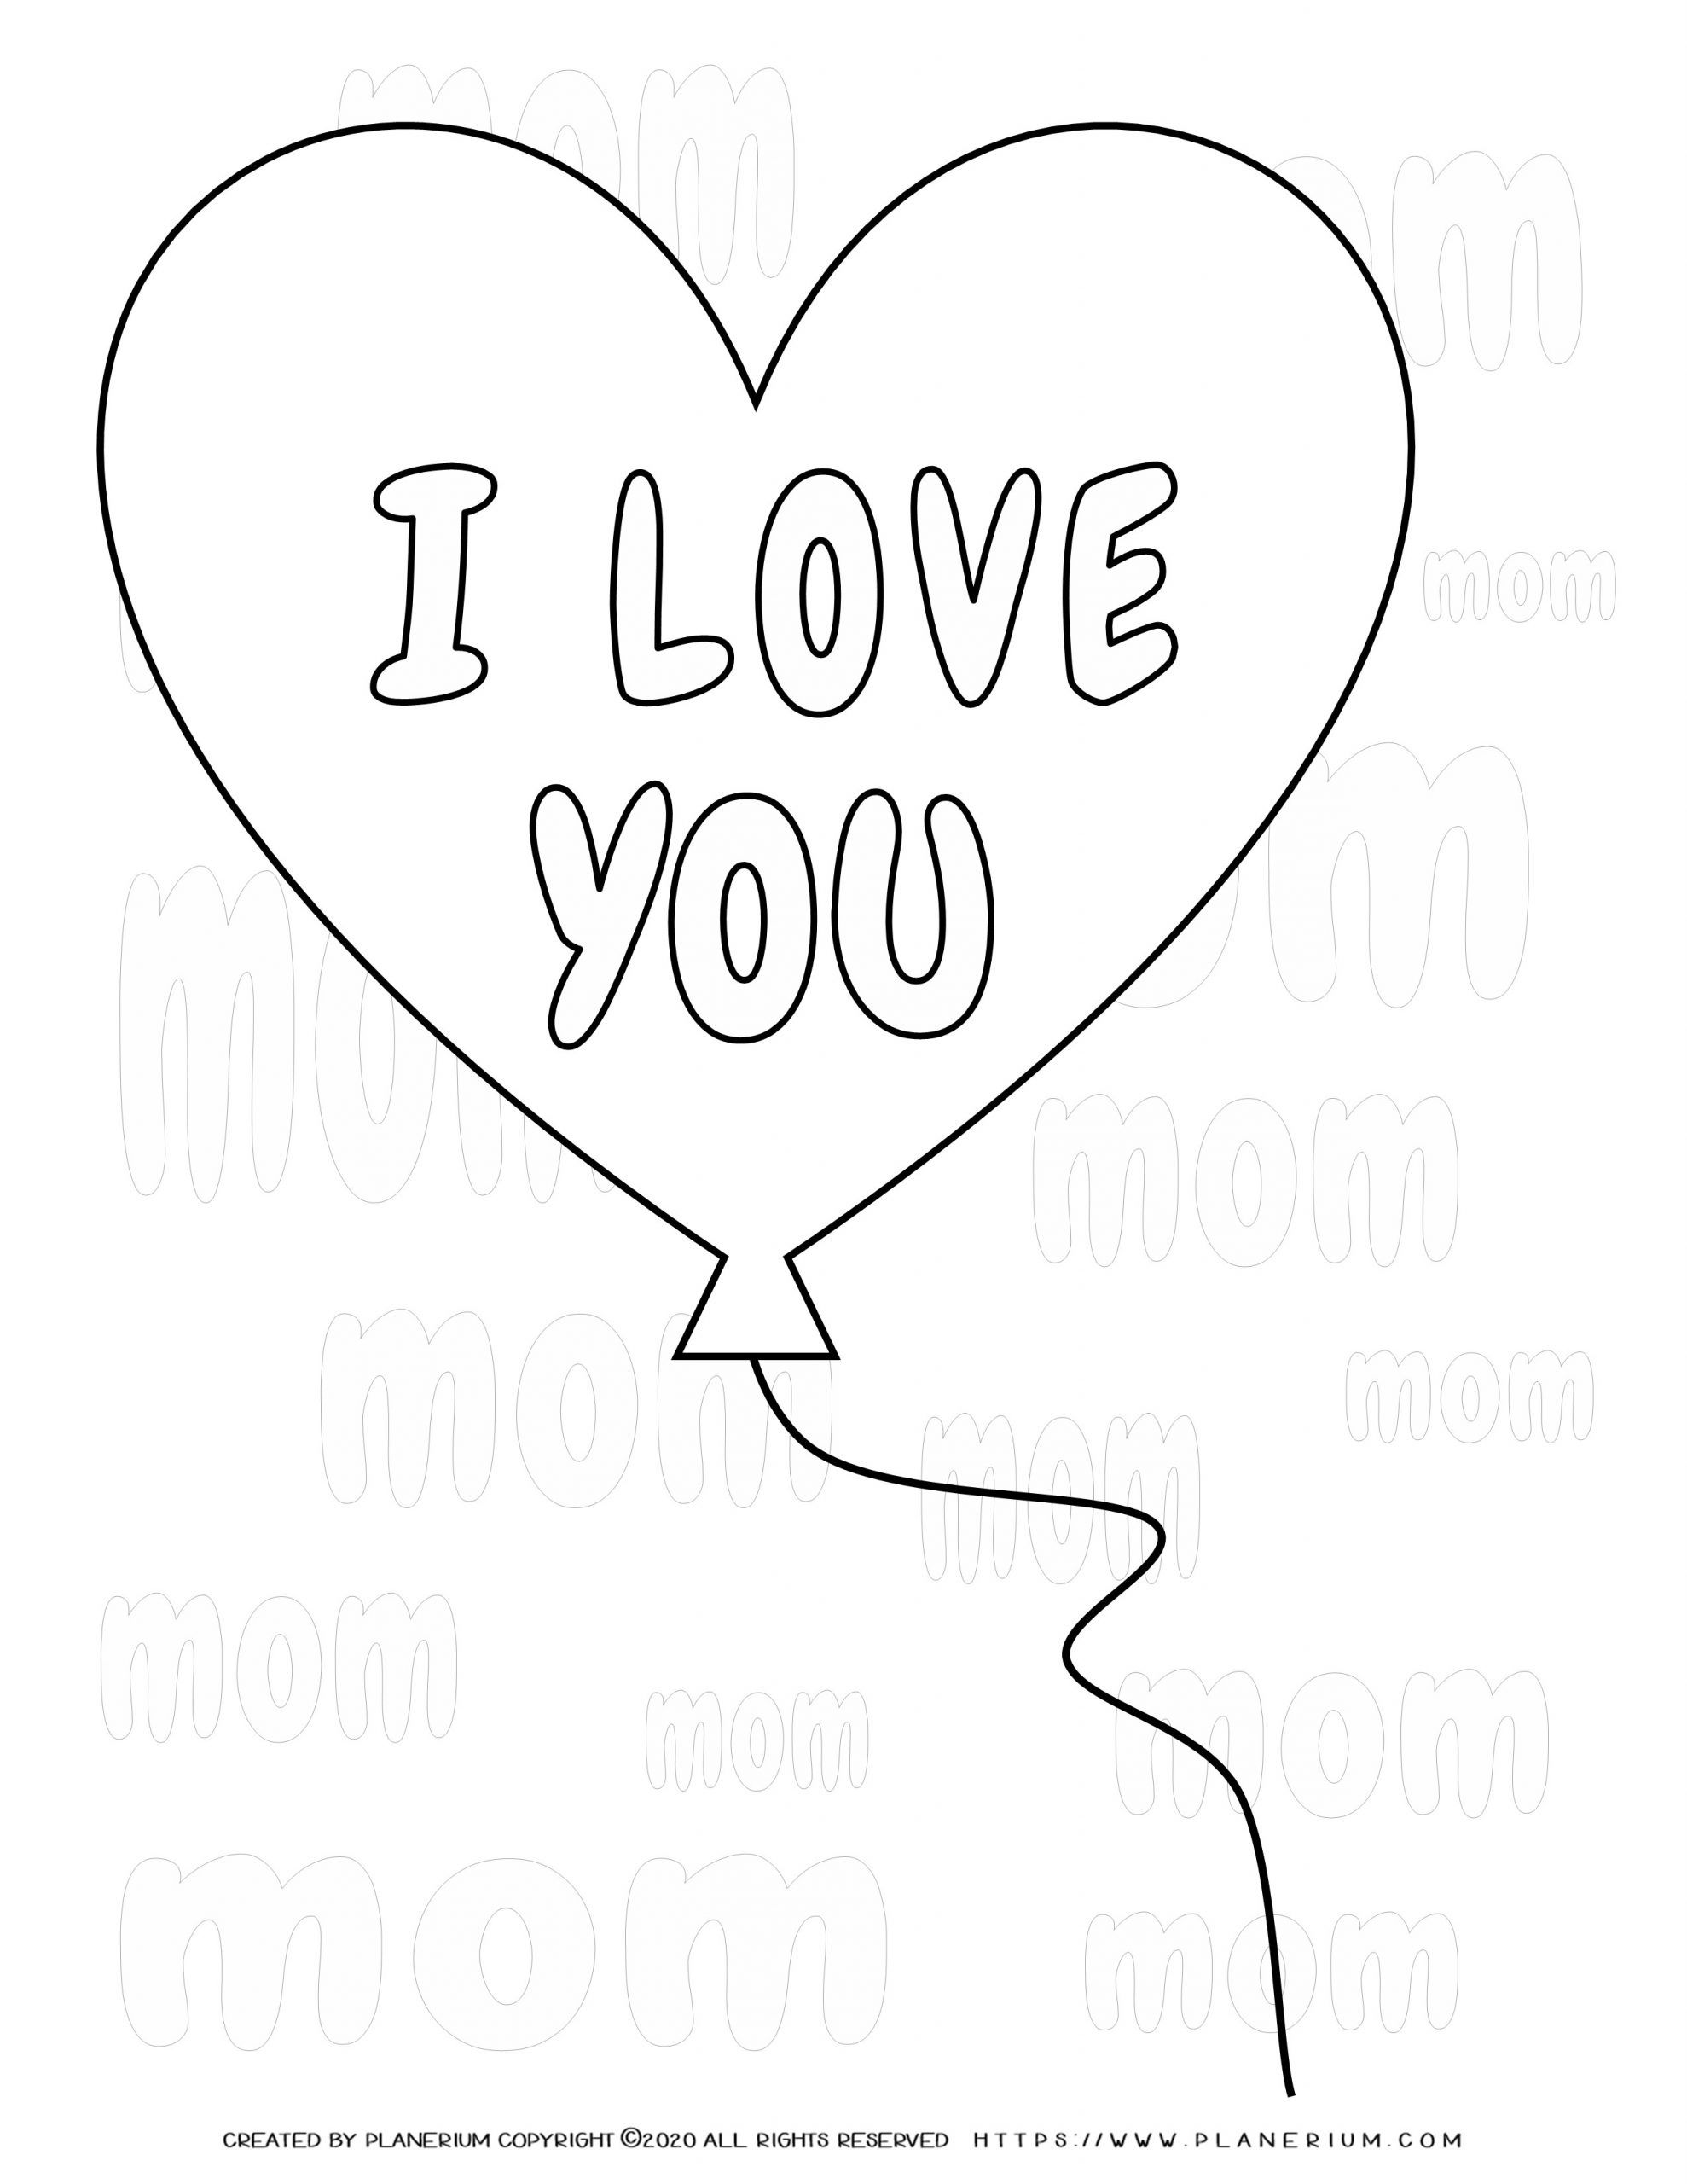 Mother's day - Coloring Page - Heart balloon I Love You Mom